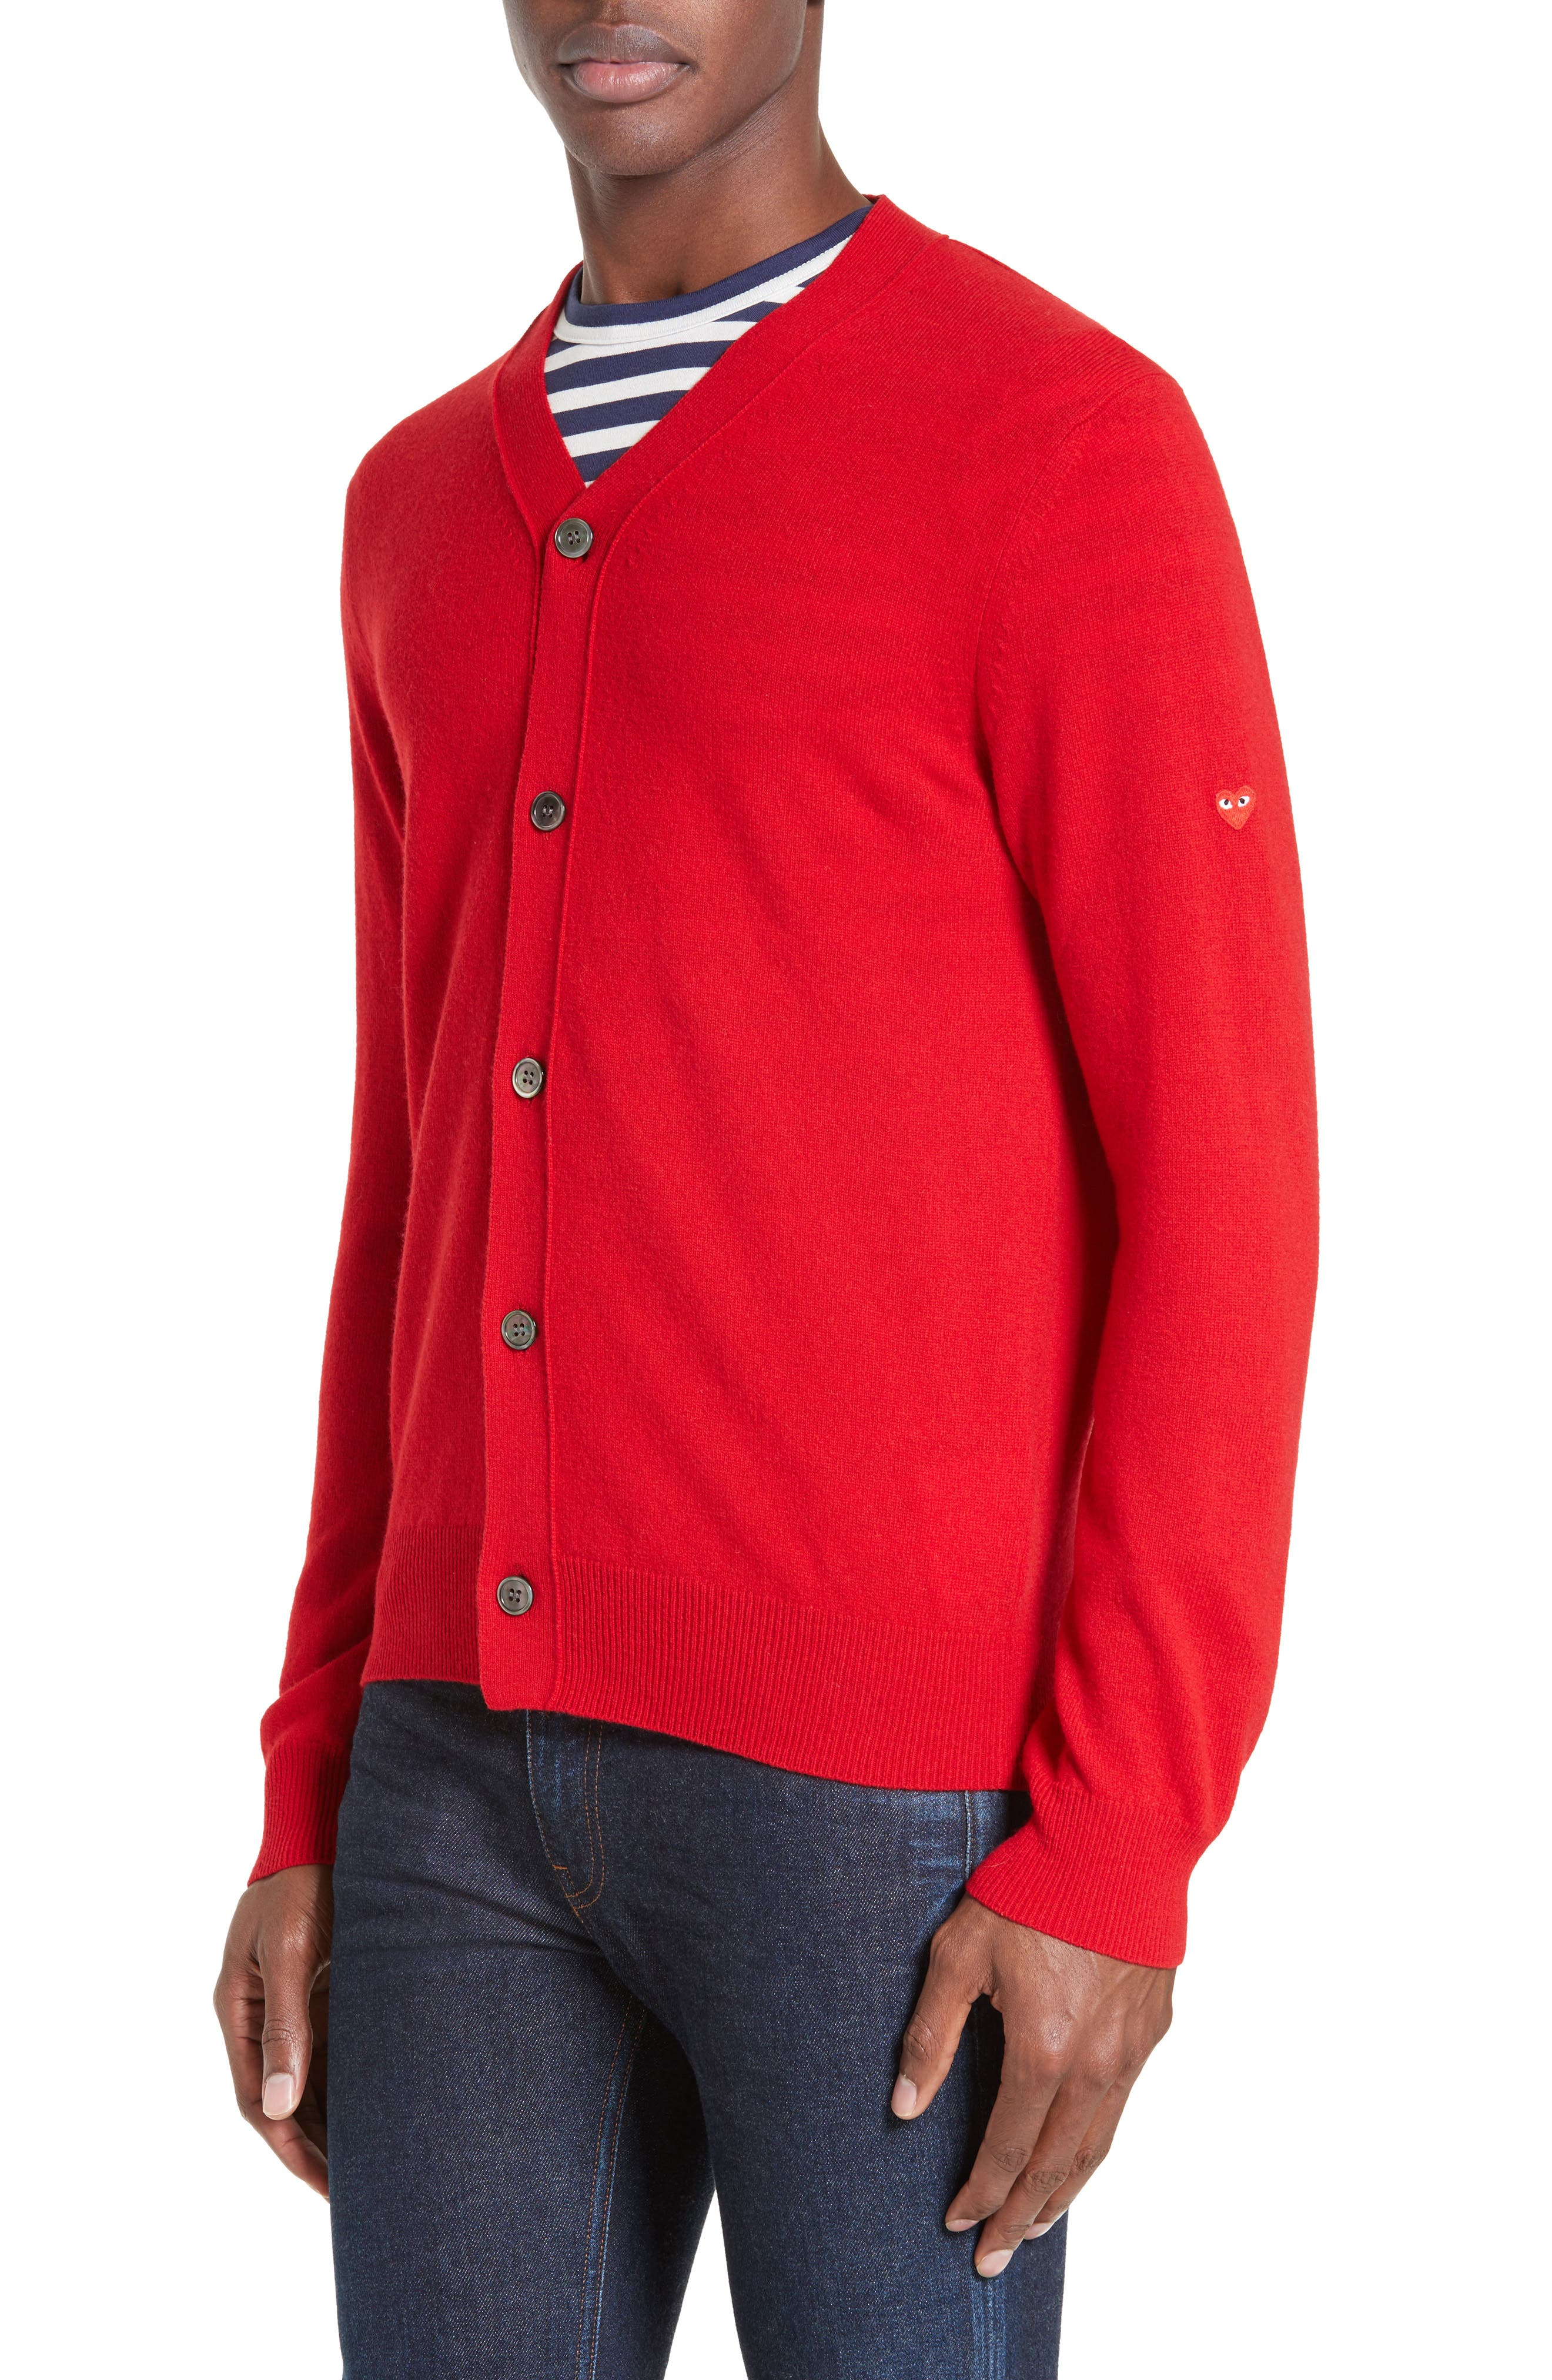 PLAY Wool Cardigan,                             Main thumbnail 1, color,                             Red